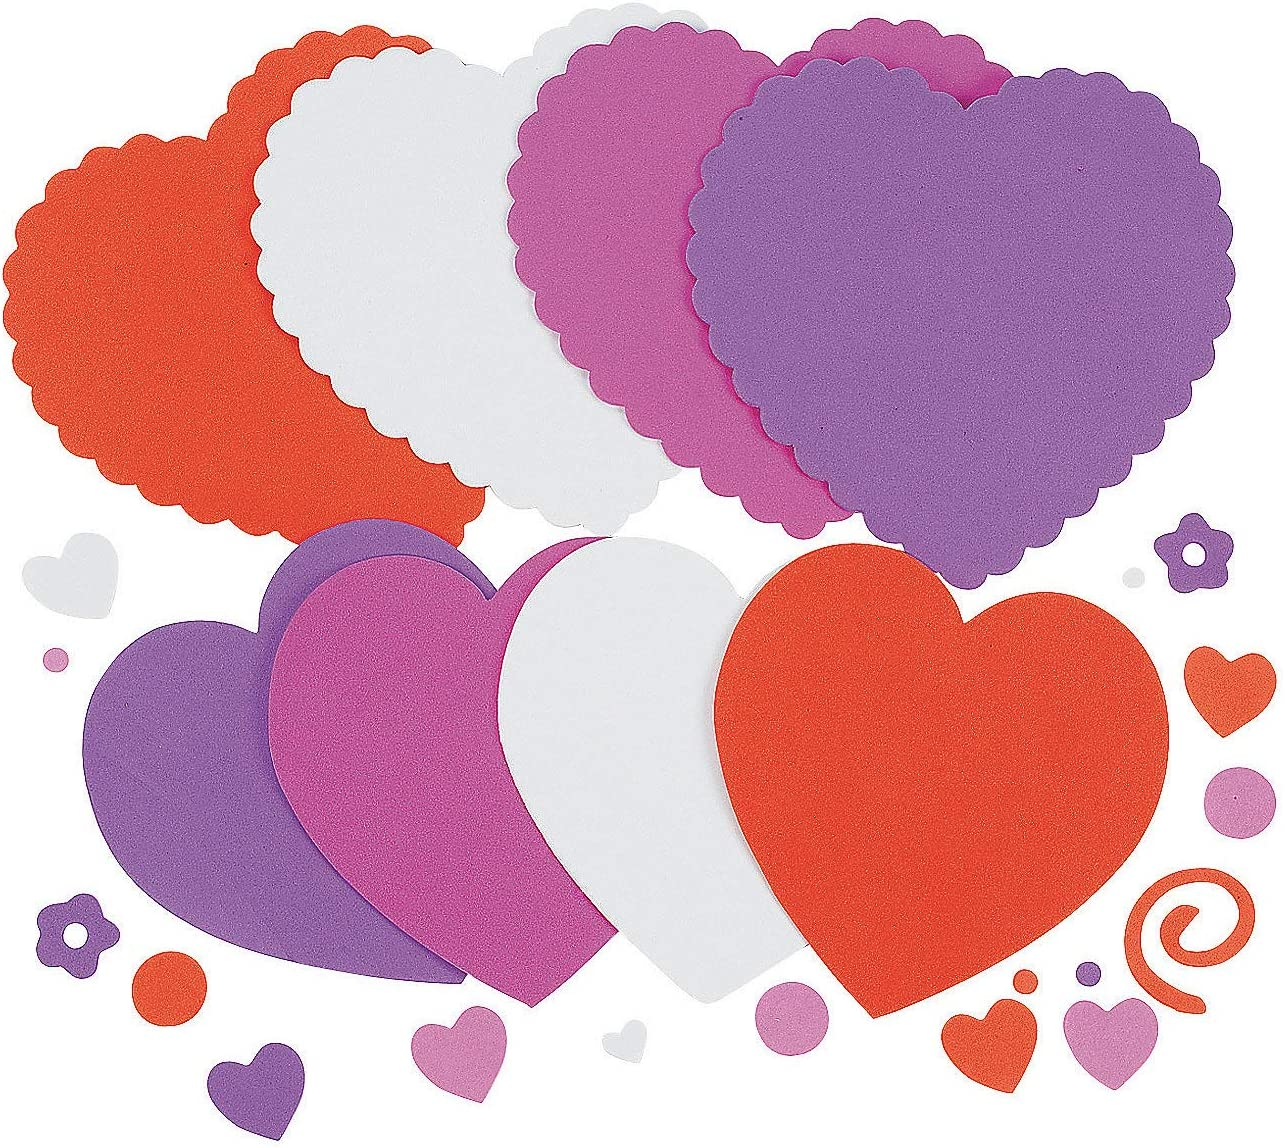 Makes 12 520 Pcs Valentines Heart Craft Kit for Kids Valentines Day Crafts for Classroom by 4Es Novelty Self-Adhesive Foam Stickers /& Letters Included